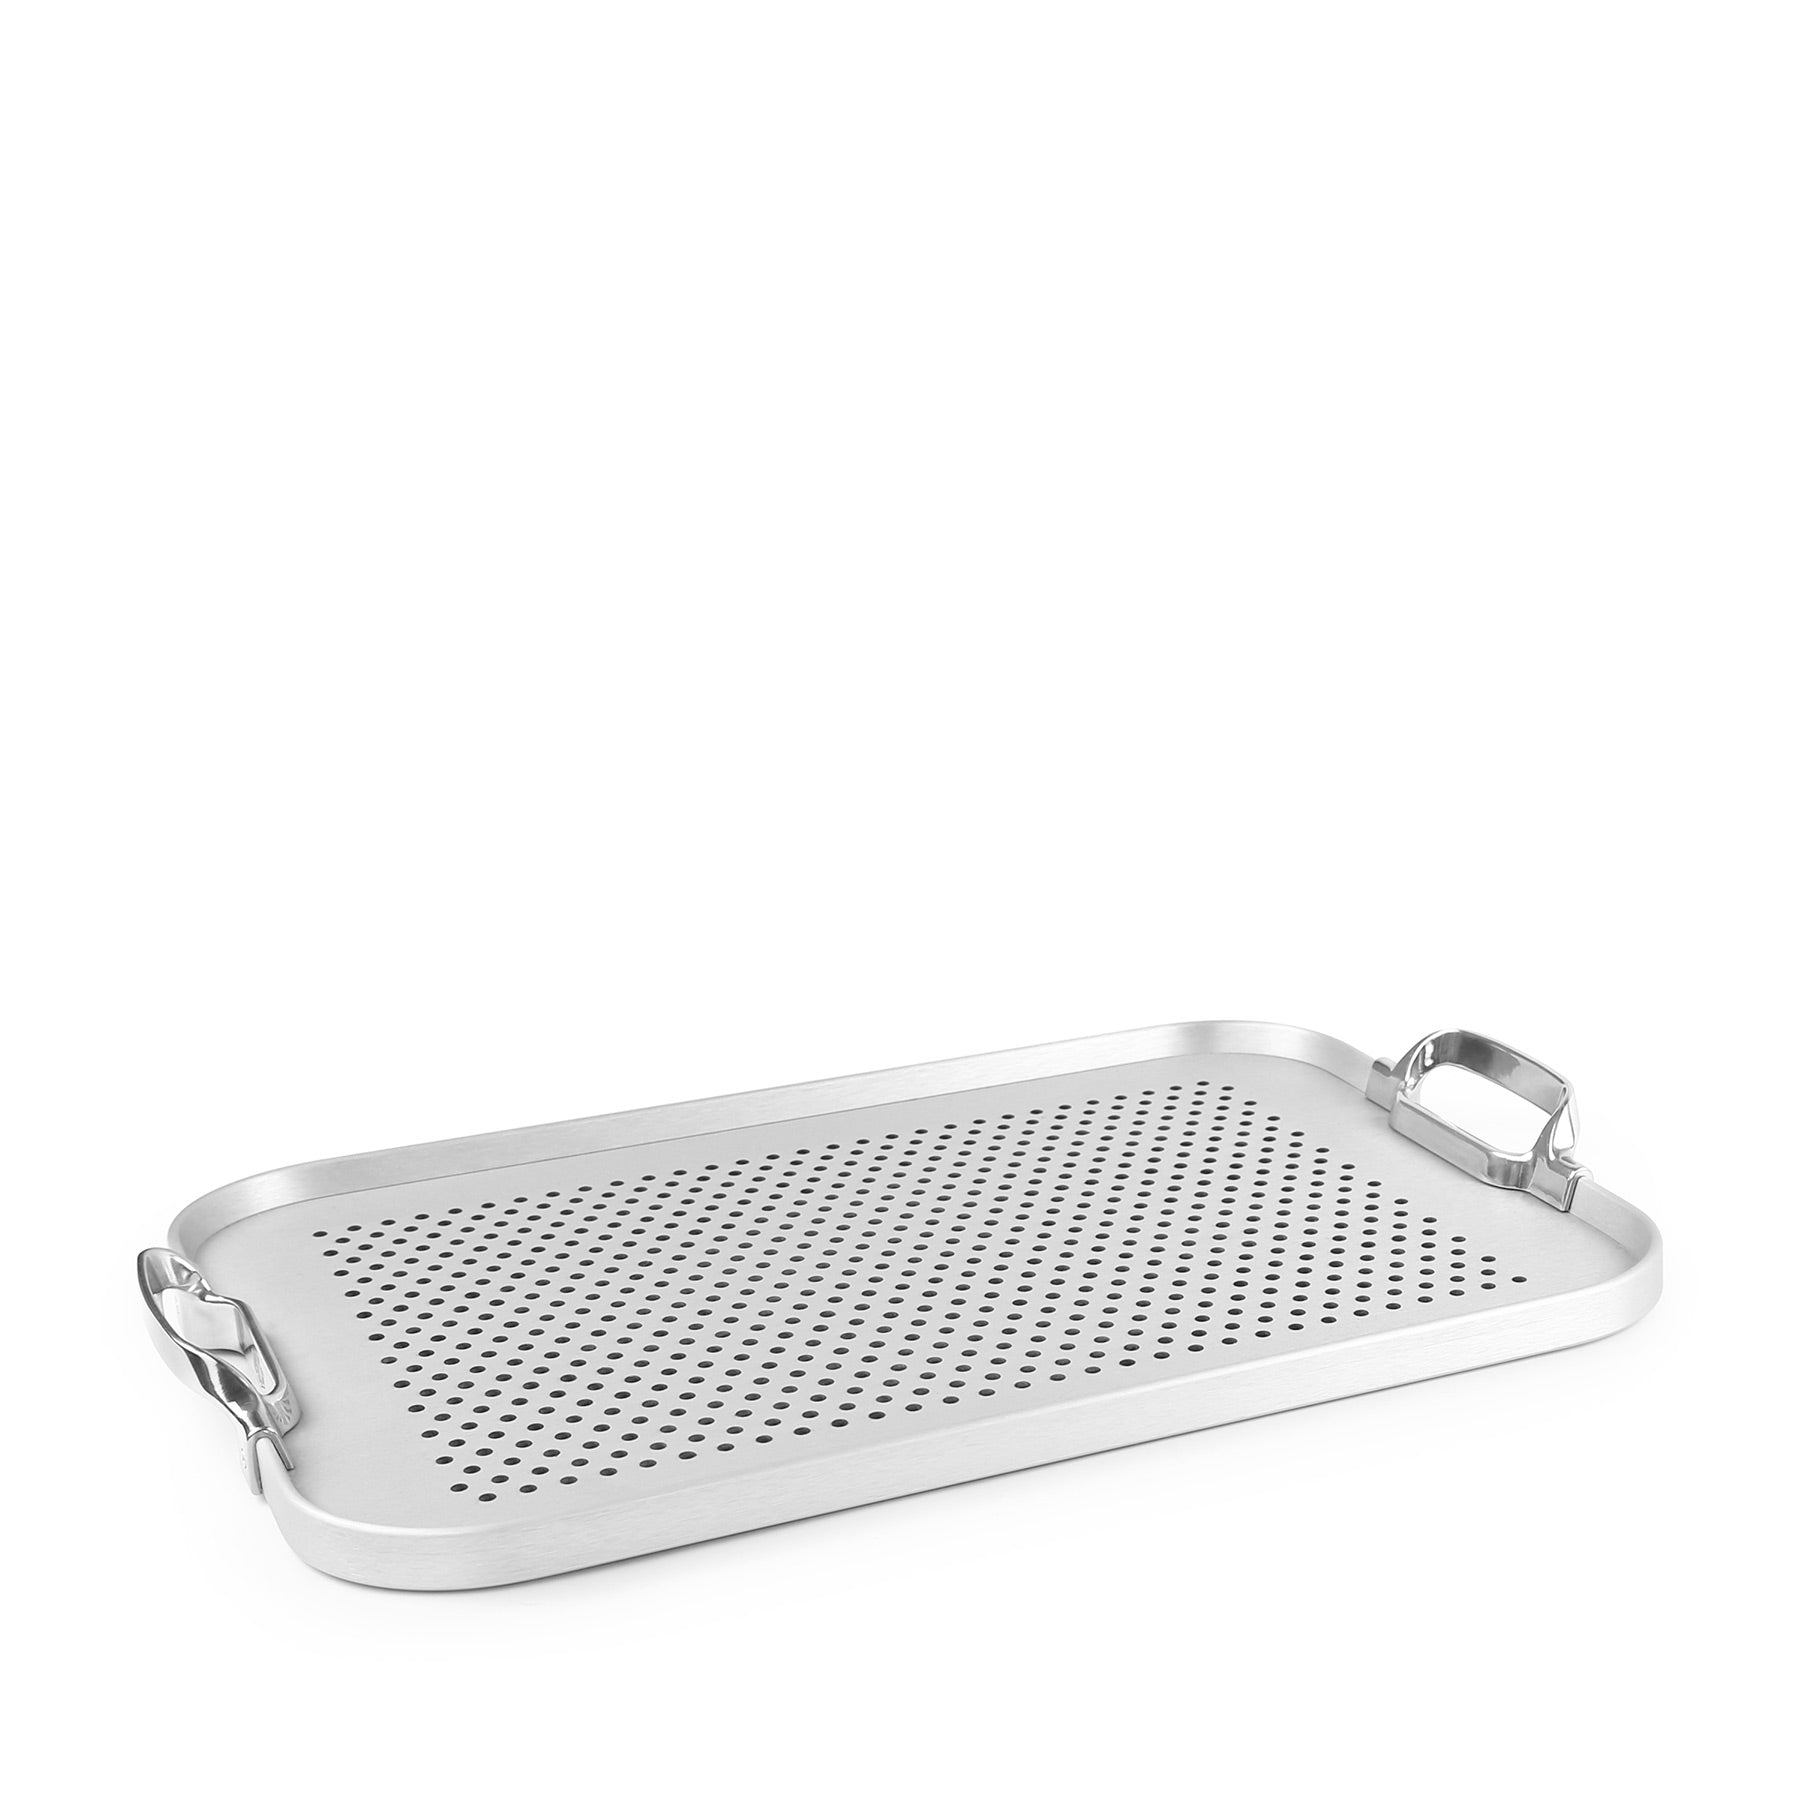 Original Tray with Grips in Silver 20